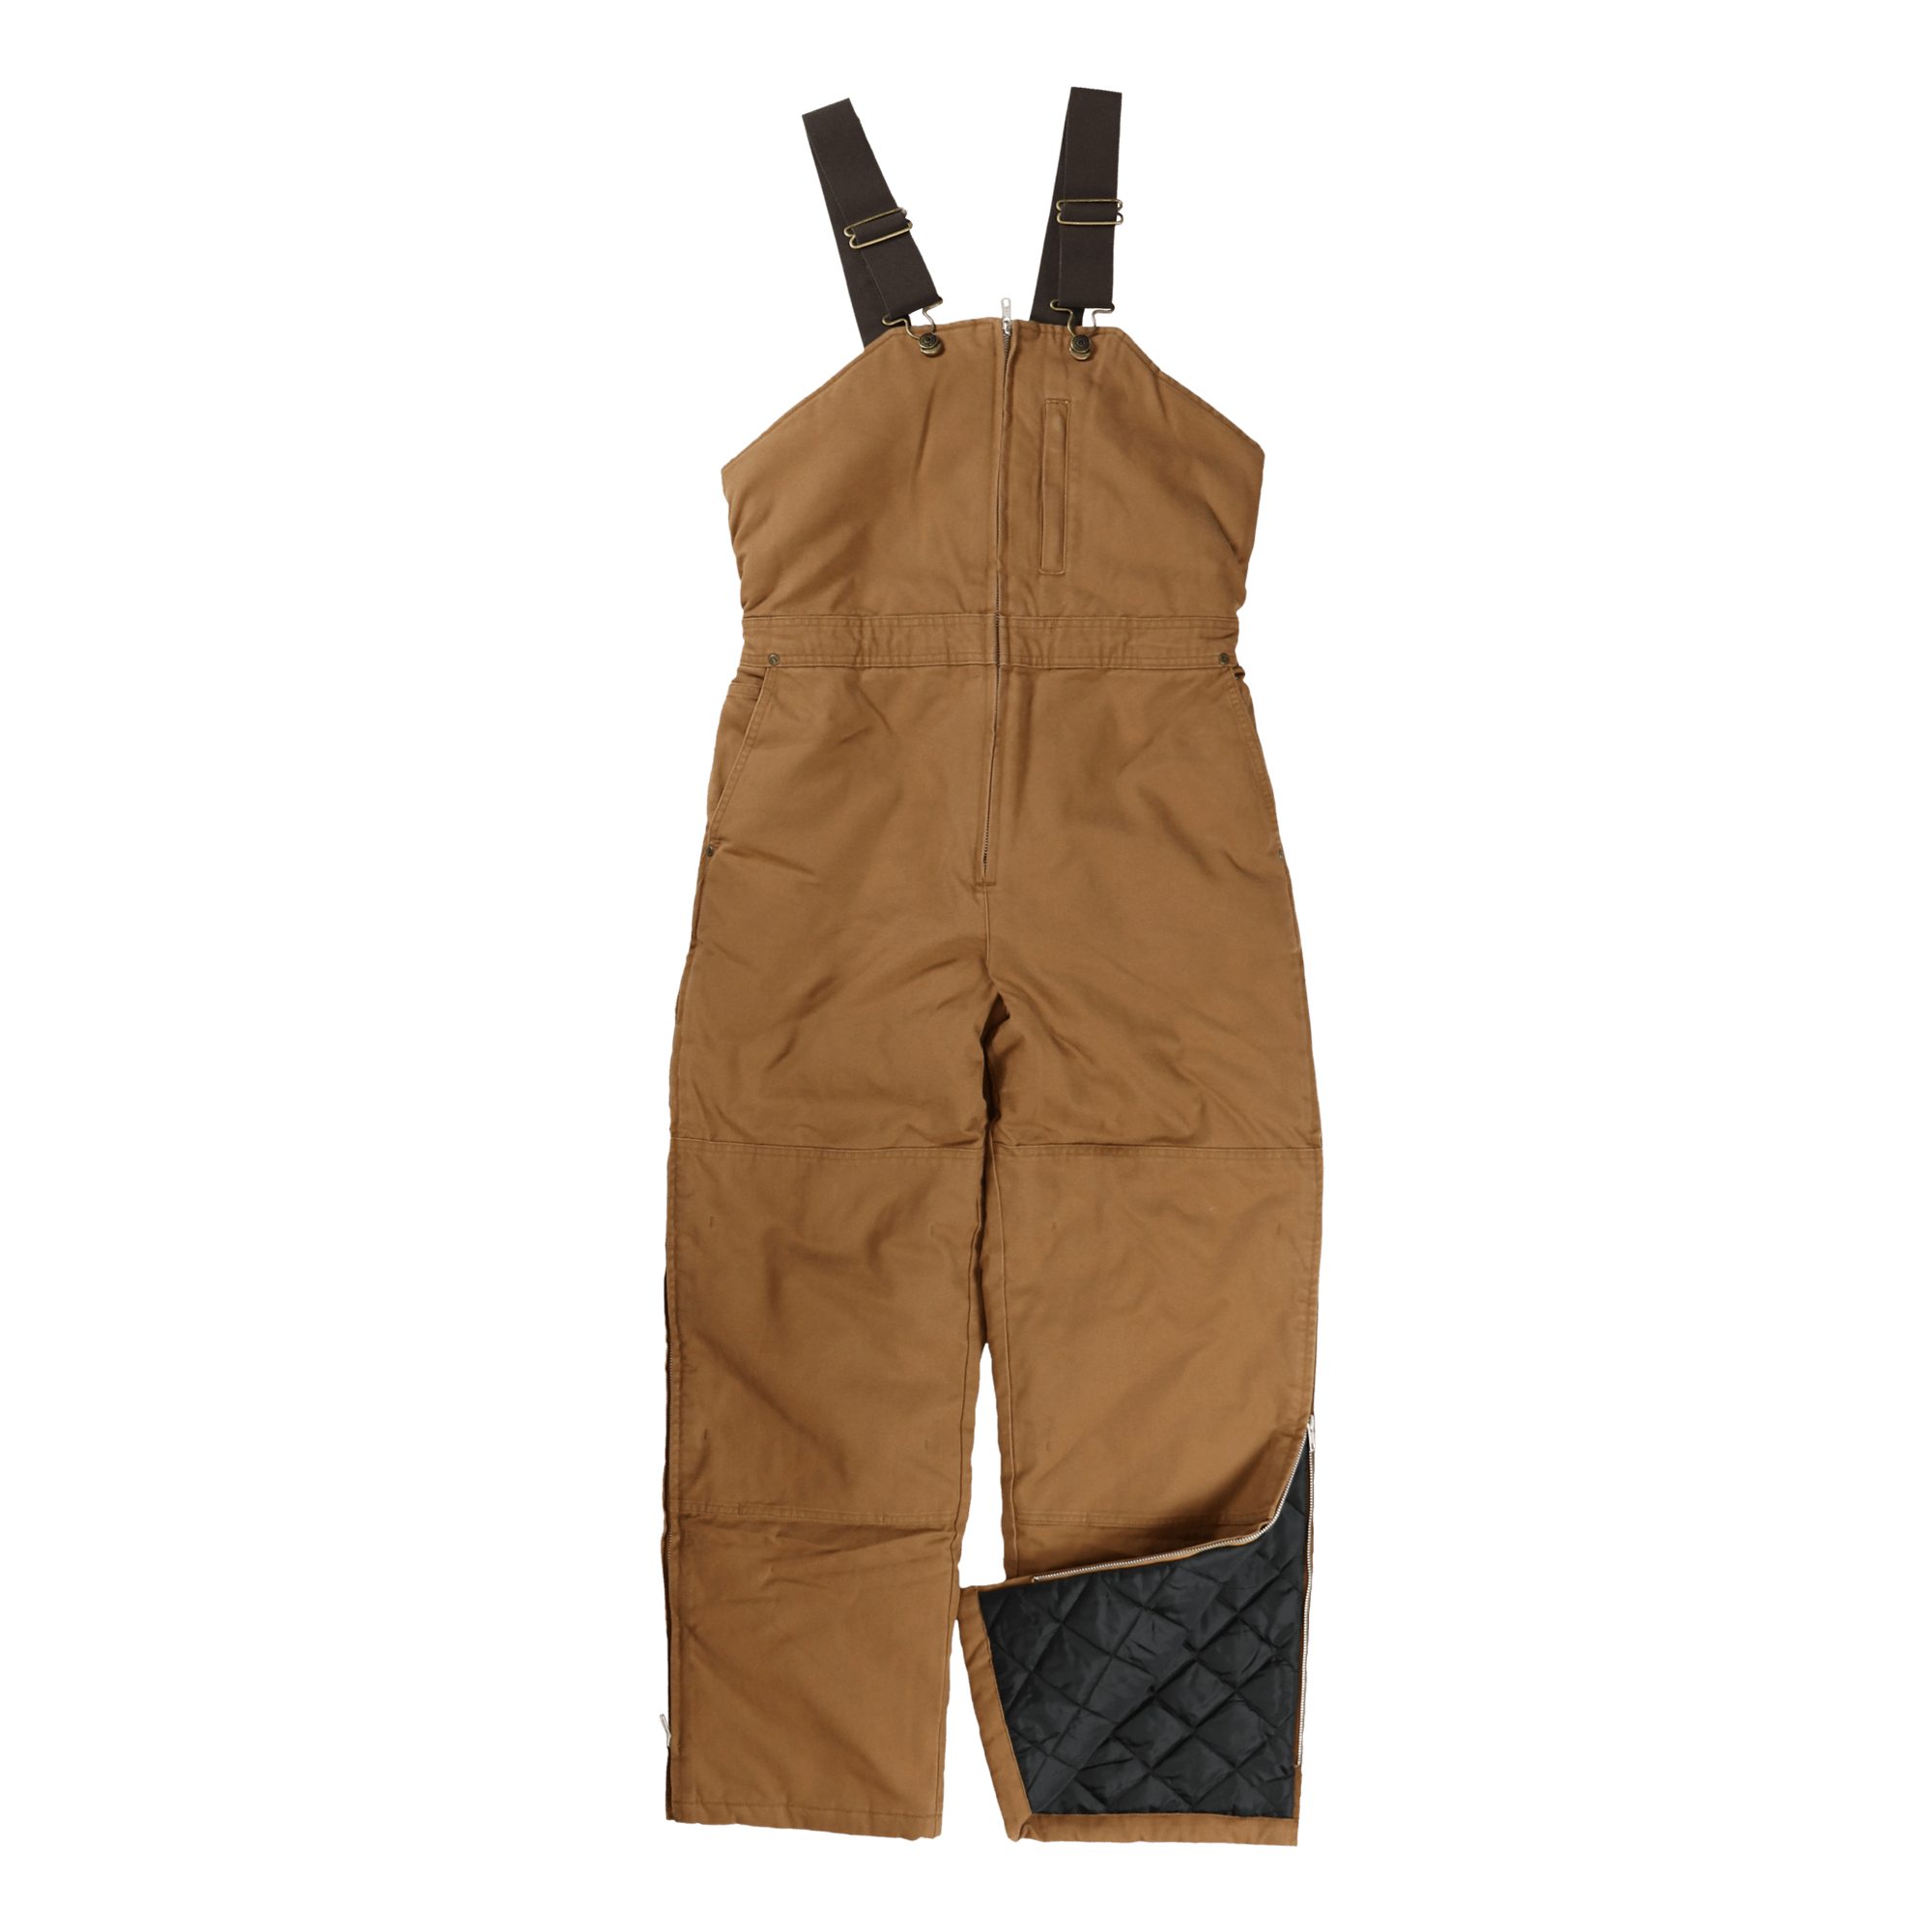 Tough Duck Womens Insulated Duck Overalls Brown Front View WB02